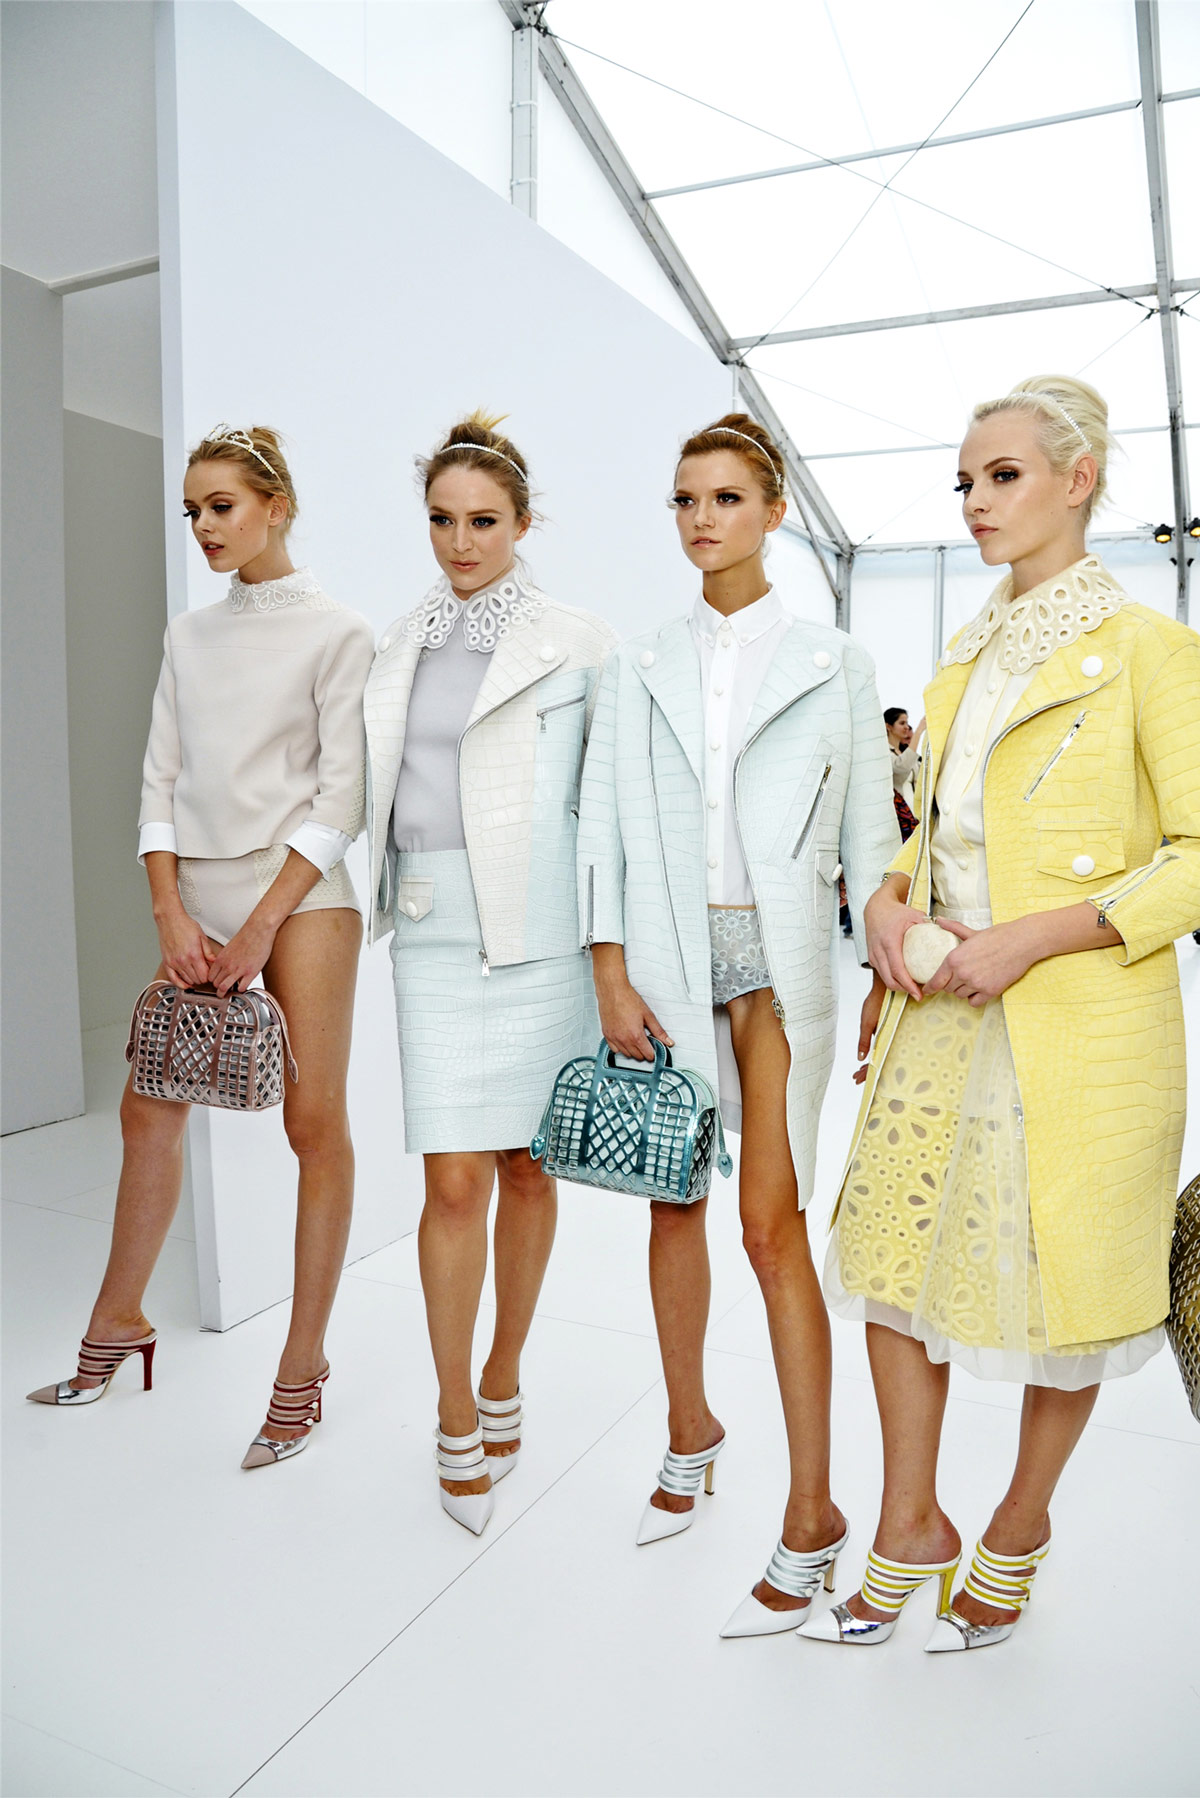 Louis Vuitton Spring Summer 2012 Ready-To-Wear collection